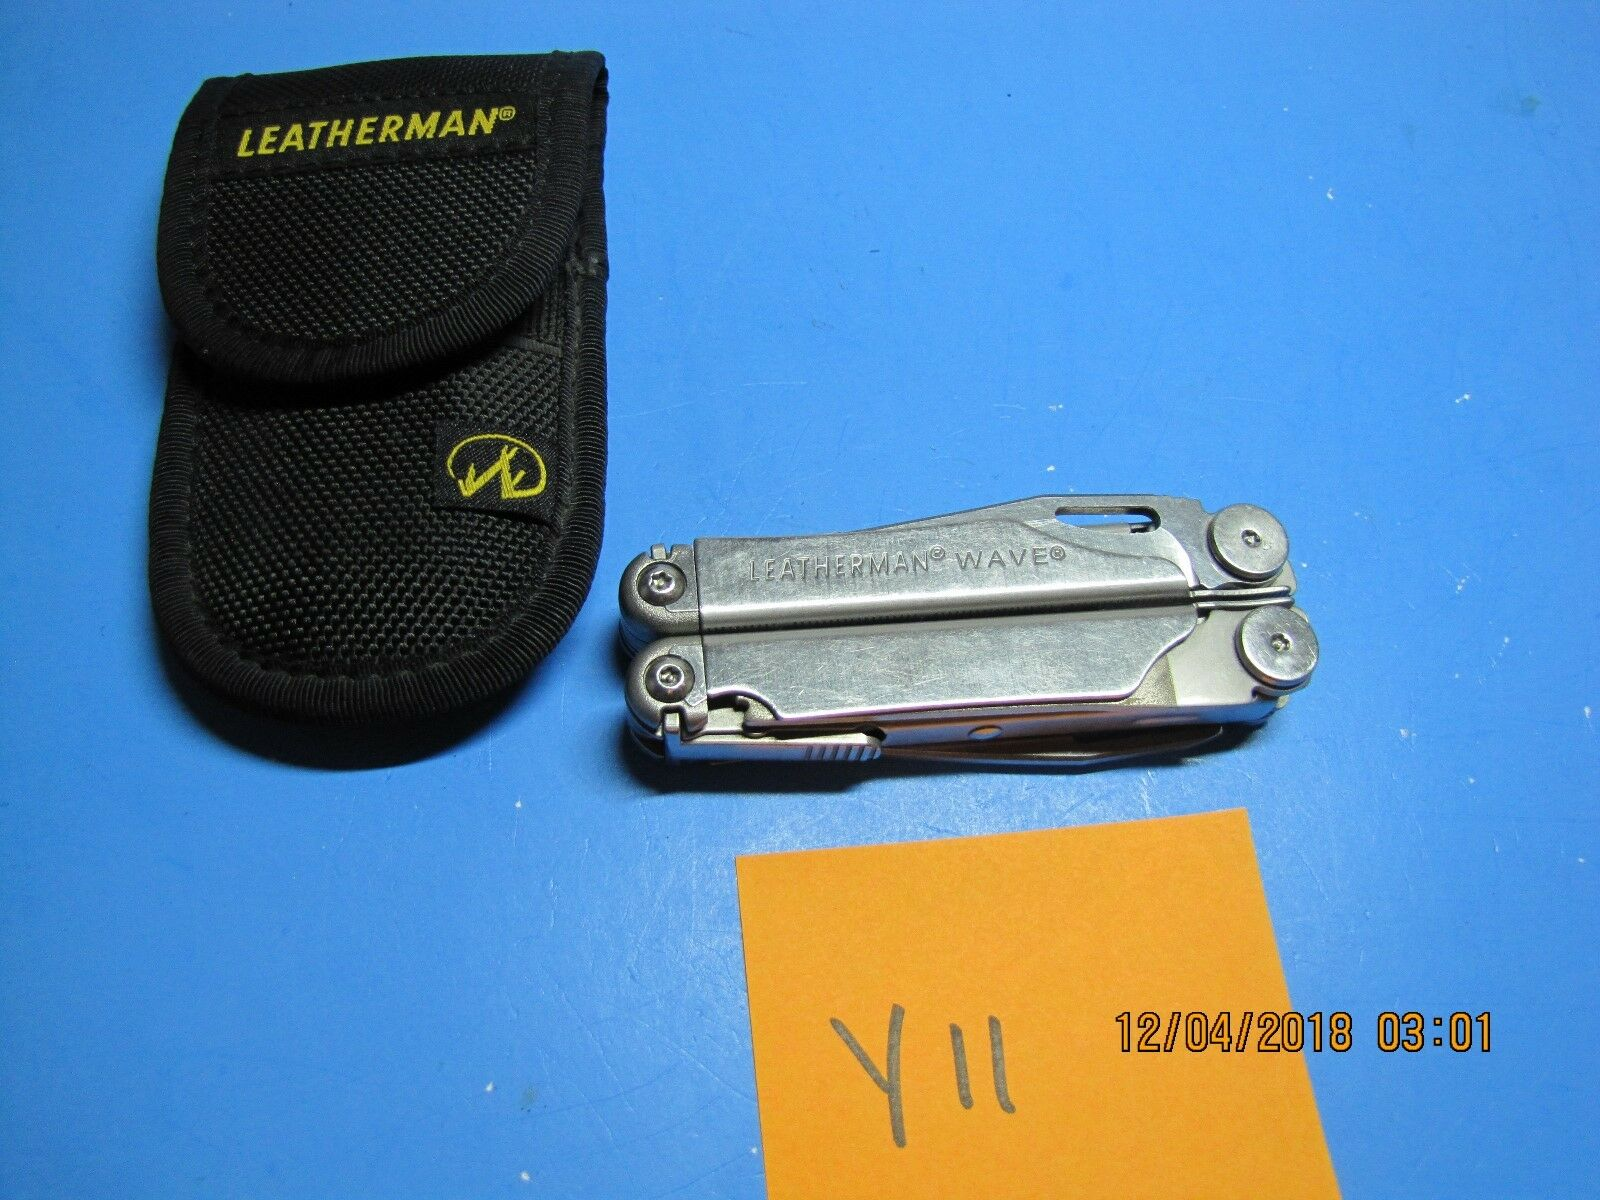 Lederman WAVE  Full-Größe Multi-Tool    TSA  Y11  NICE Gift   LOT Y11  2ef436